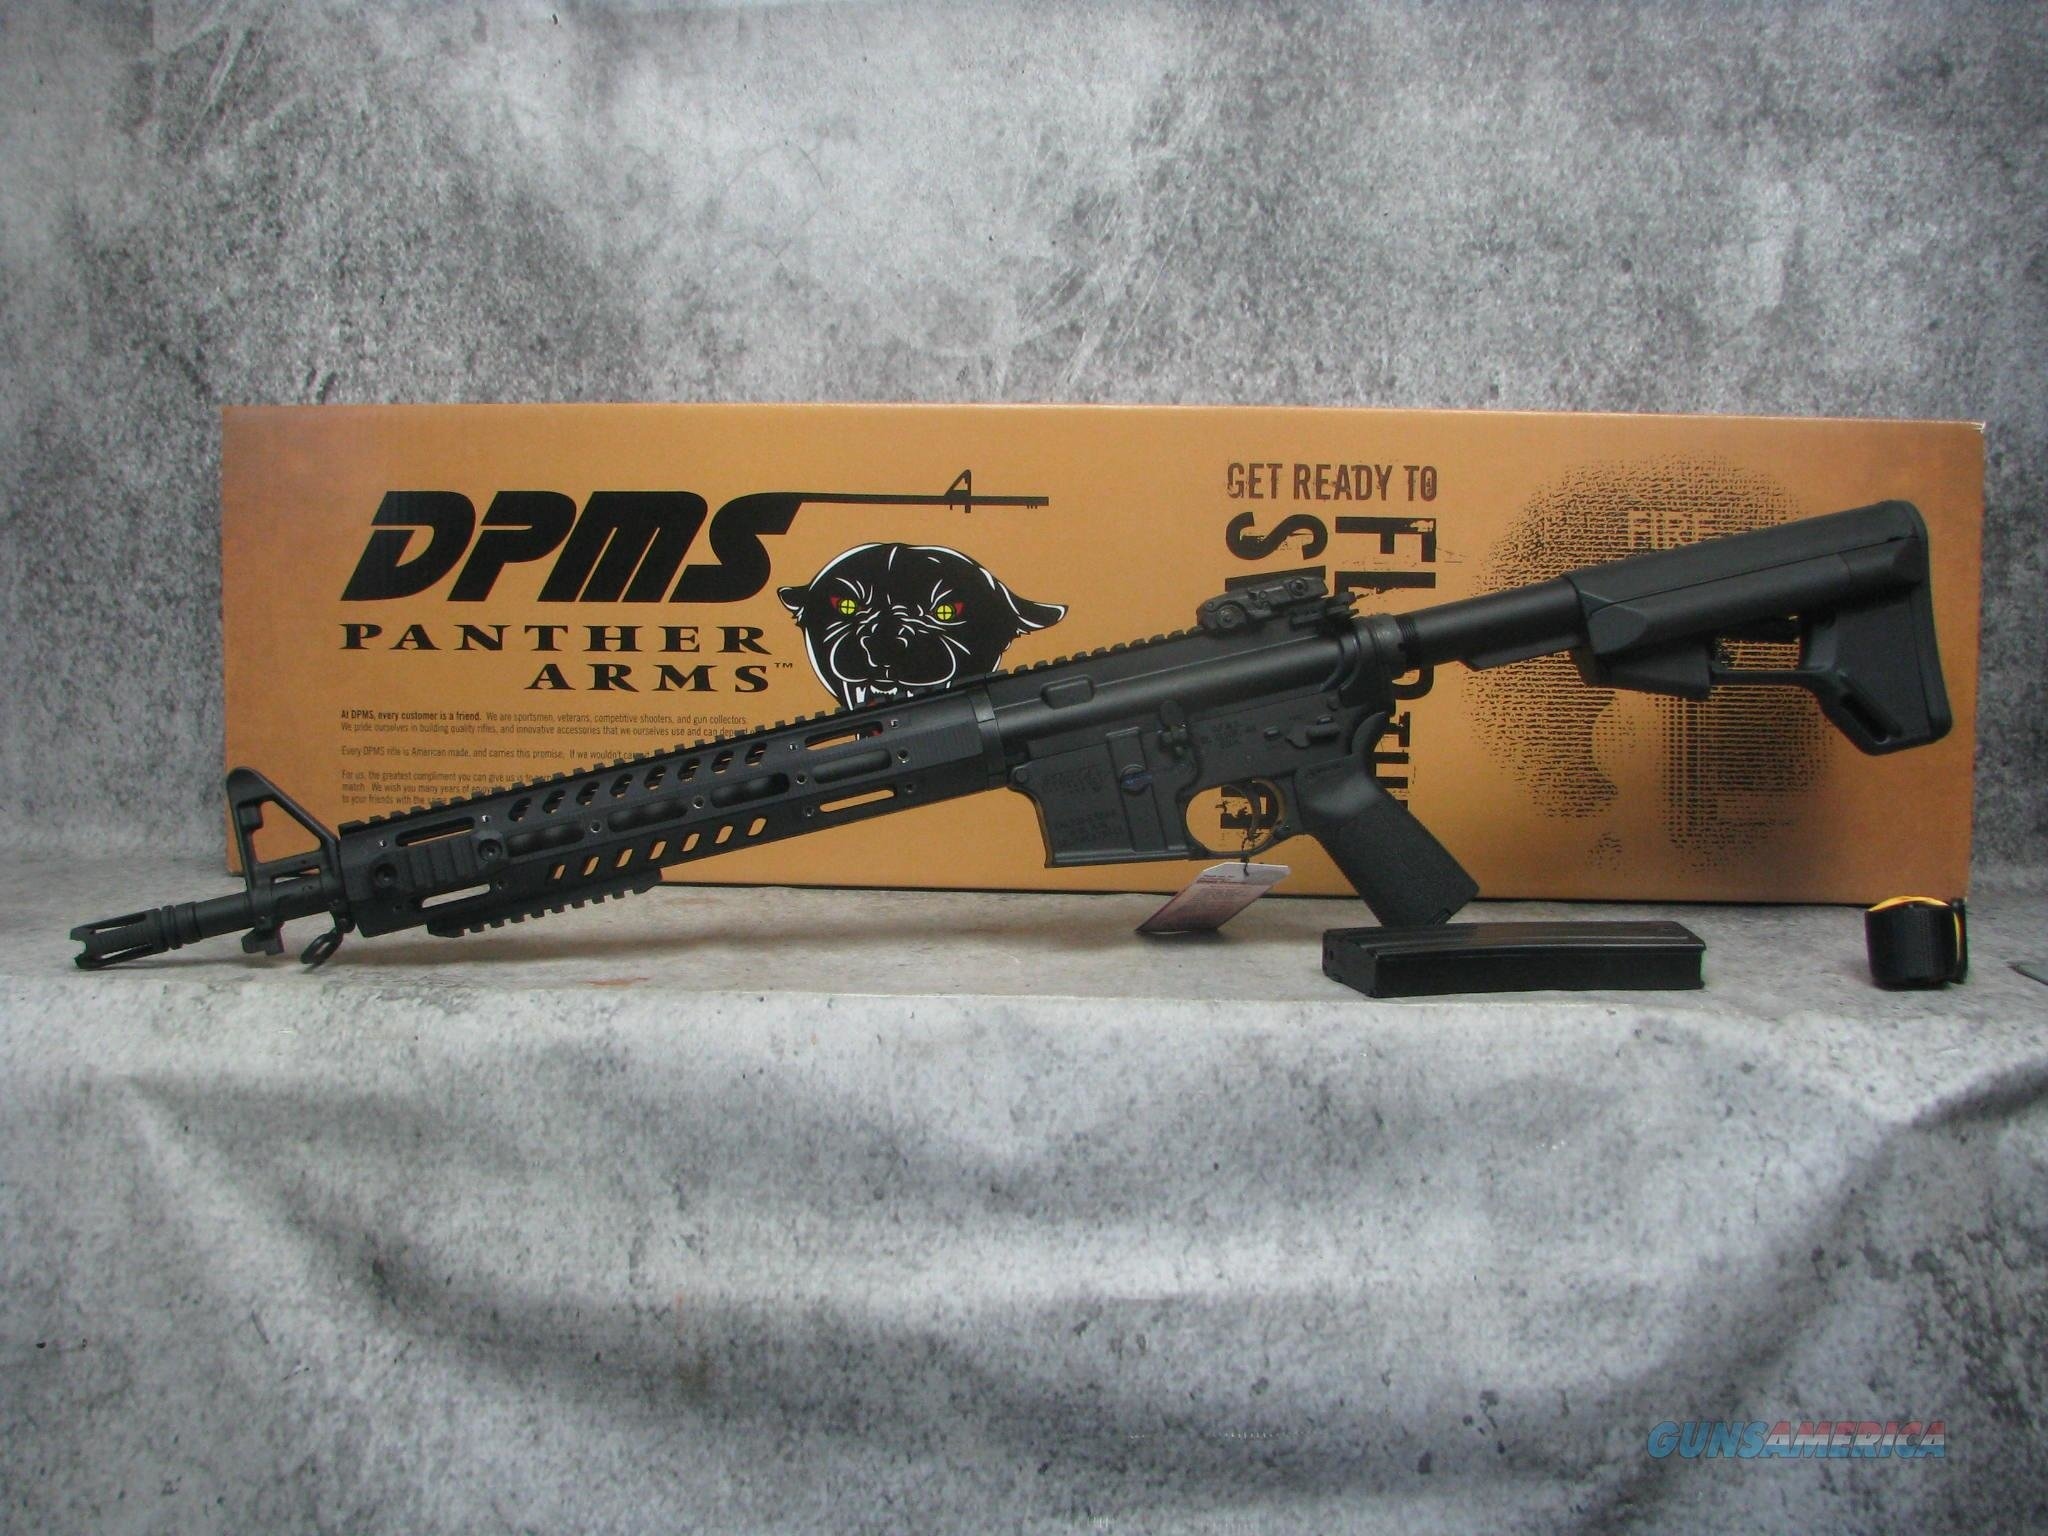 DPMS Panther TAC 2 AR-15 ar15  easy pay MULTI PAY .223 Rem/5.56 NATO carbine Free Float RFA3-TAC2 Magpul  Pistol Grip  Guns > Rifles > DPMS - Panther Arms > Complete Rifle